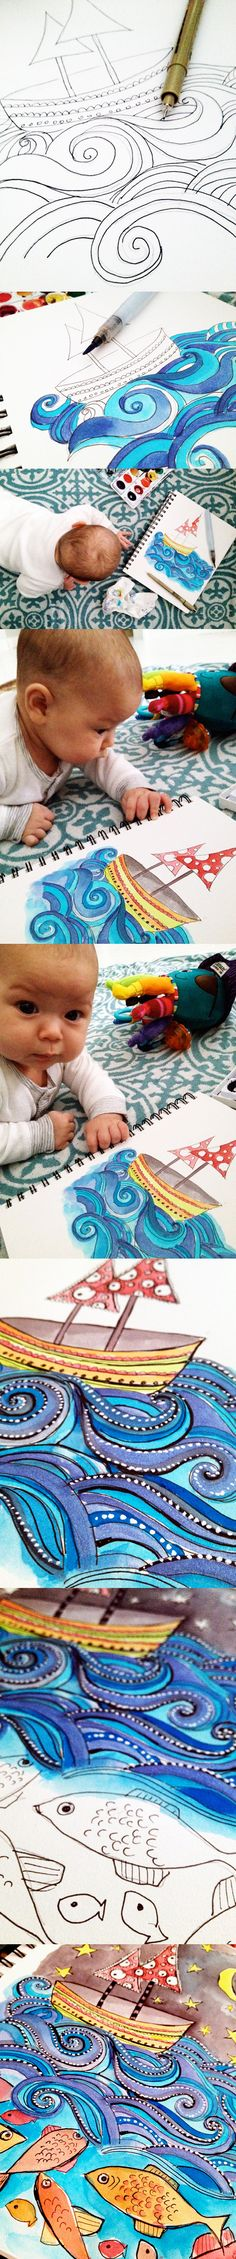 Think About Drawing A 7 Layer Story Waves Art Doodle Drawings, Doodle Art, Draw Tutorial, Middle School Art, Art Lessons Elementary, Illustrations, Drawing Lessons, Art Classroom, Arts Ed